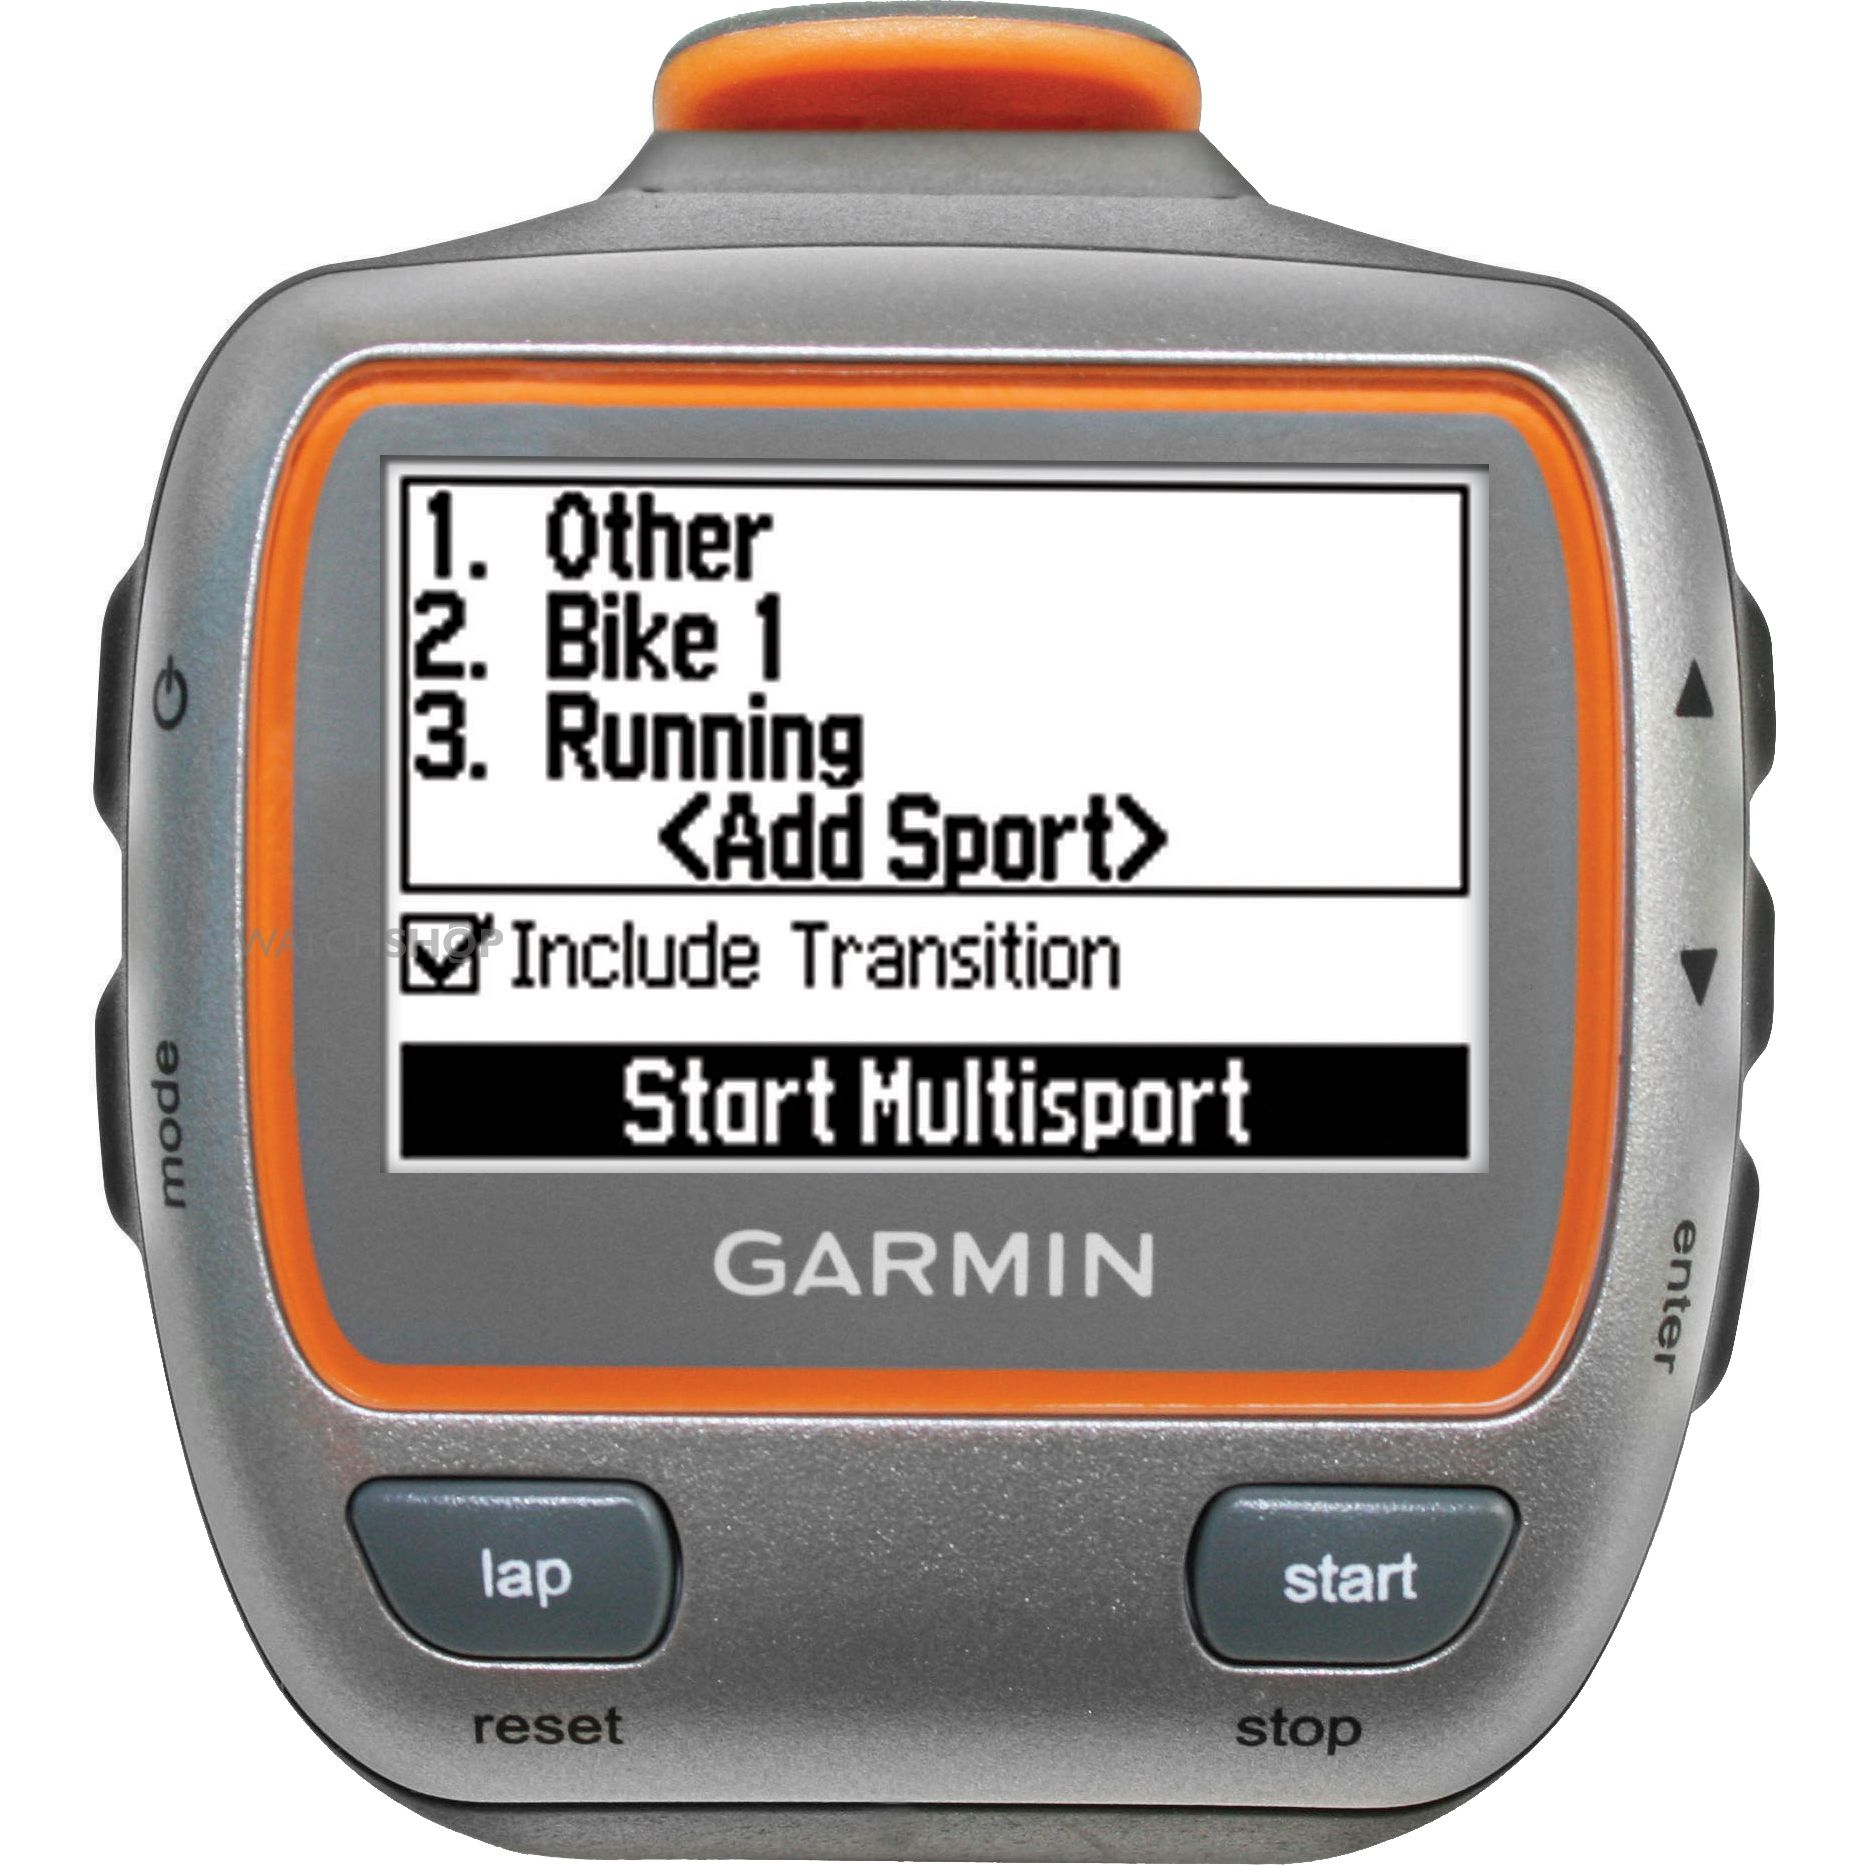 Best Sale Garmin Forerunner 310xt Top Multi Sports Gps Watch